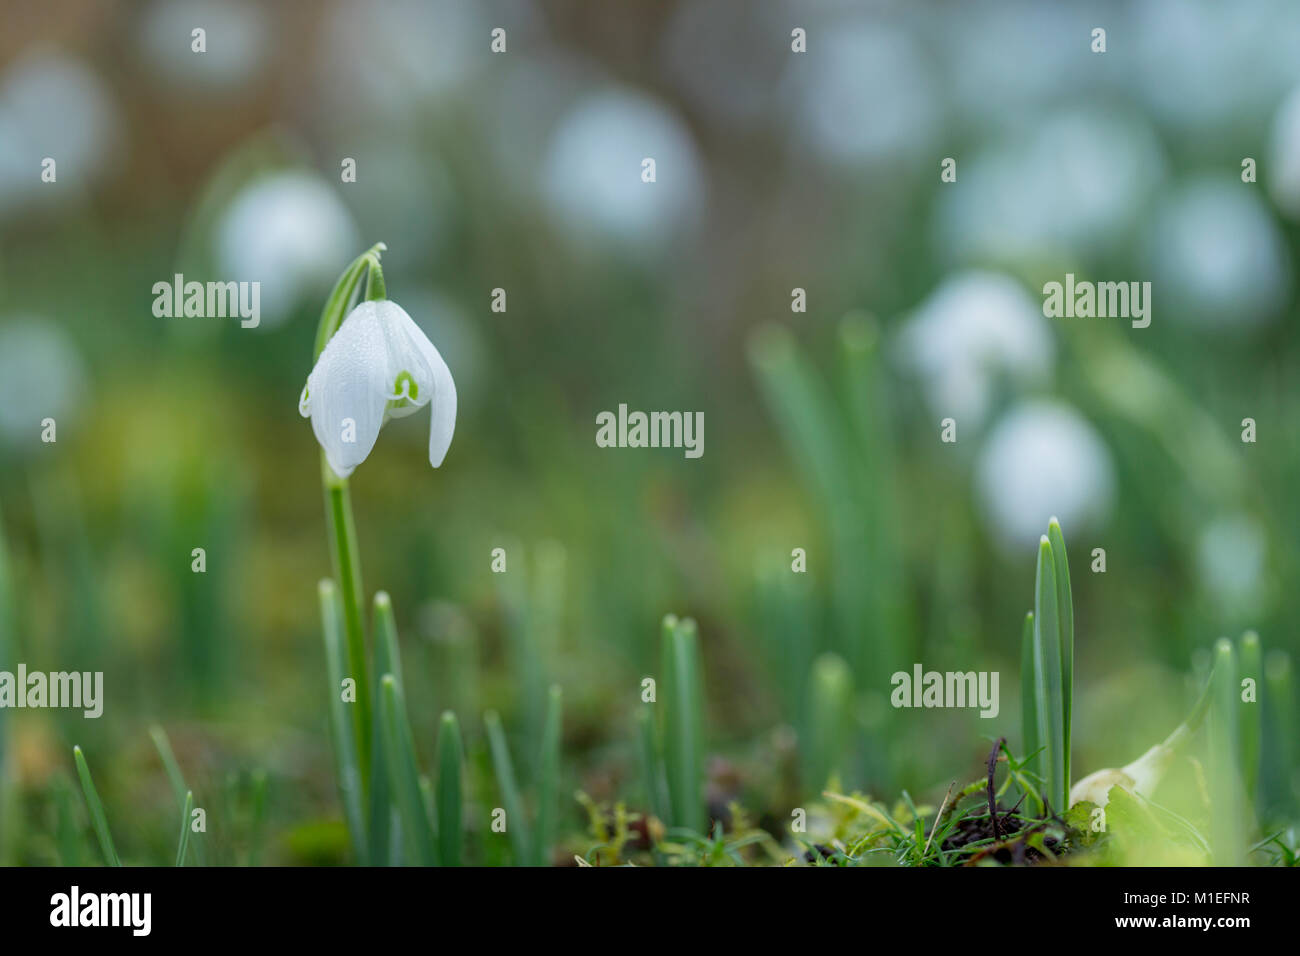 Snowdrop flowers growing wild in Wales. - Stock Image